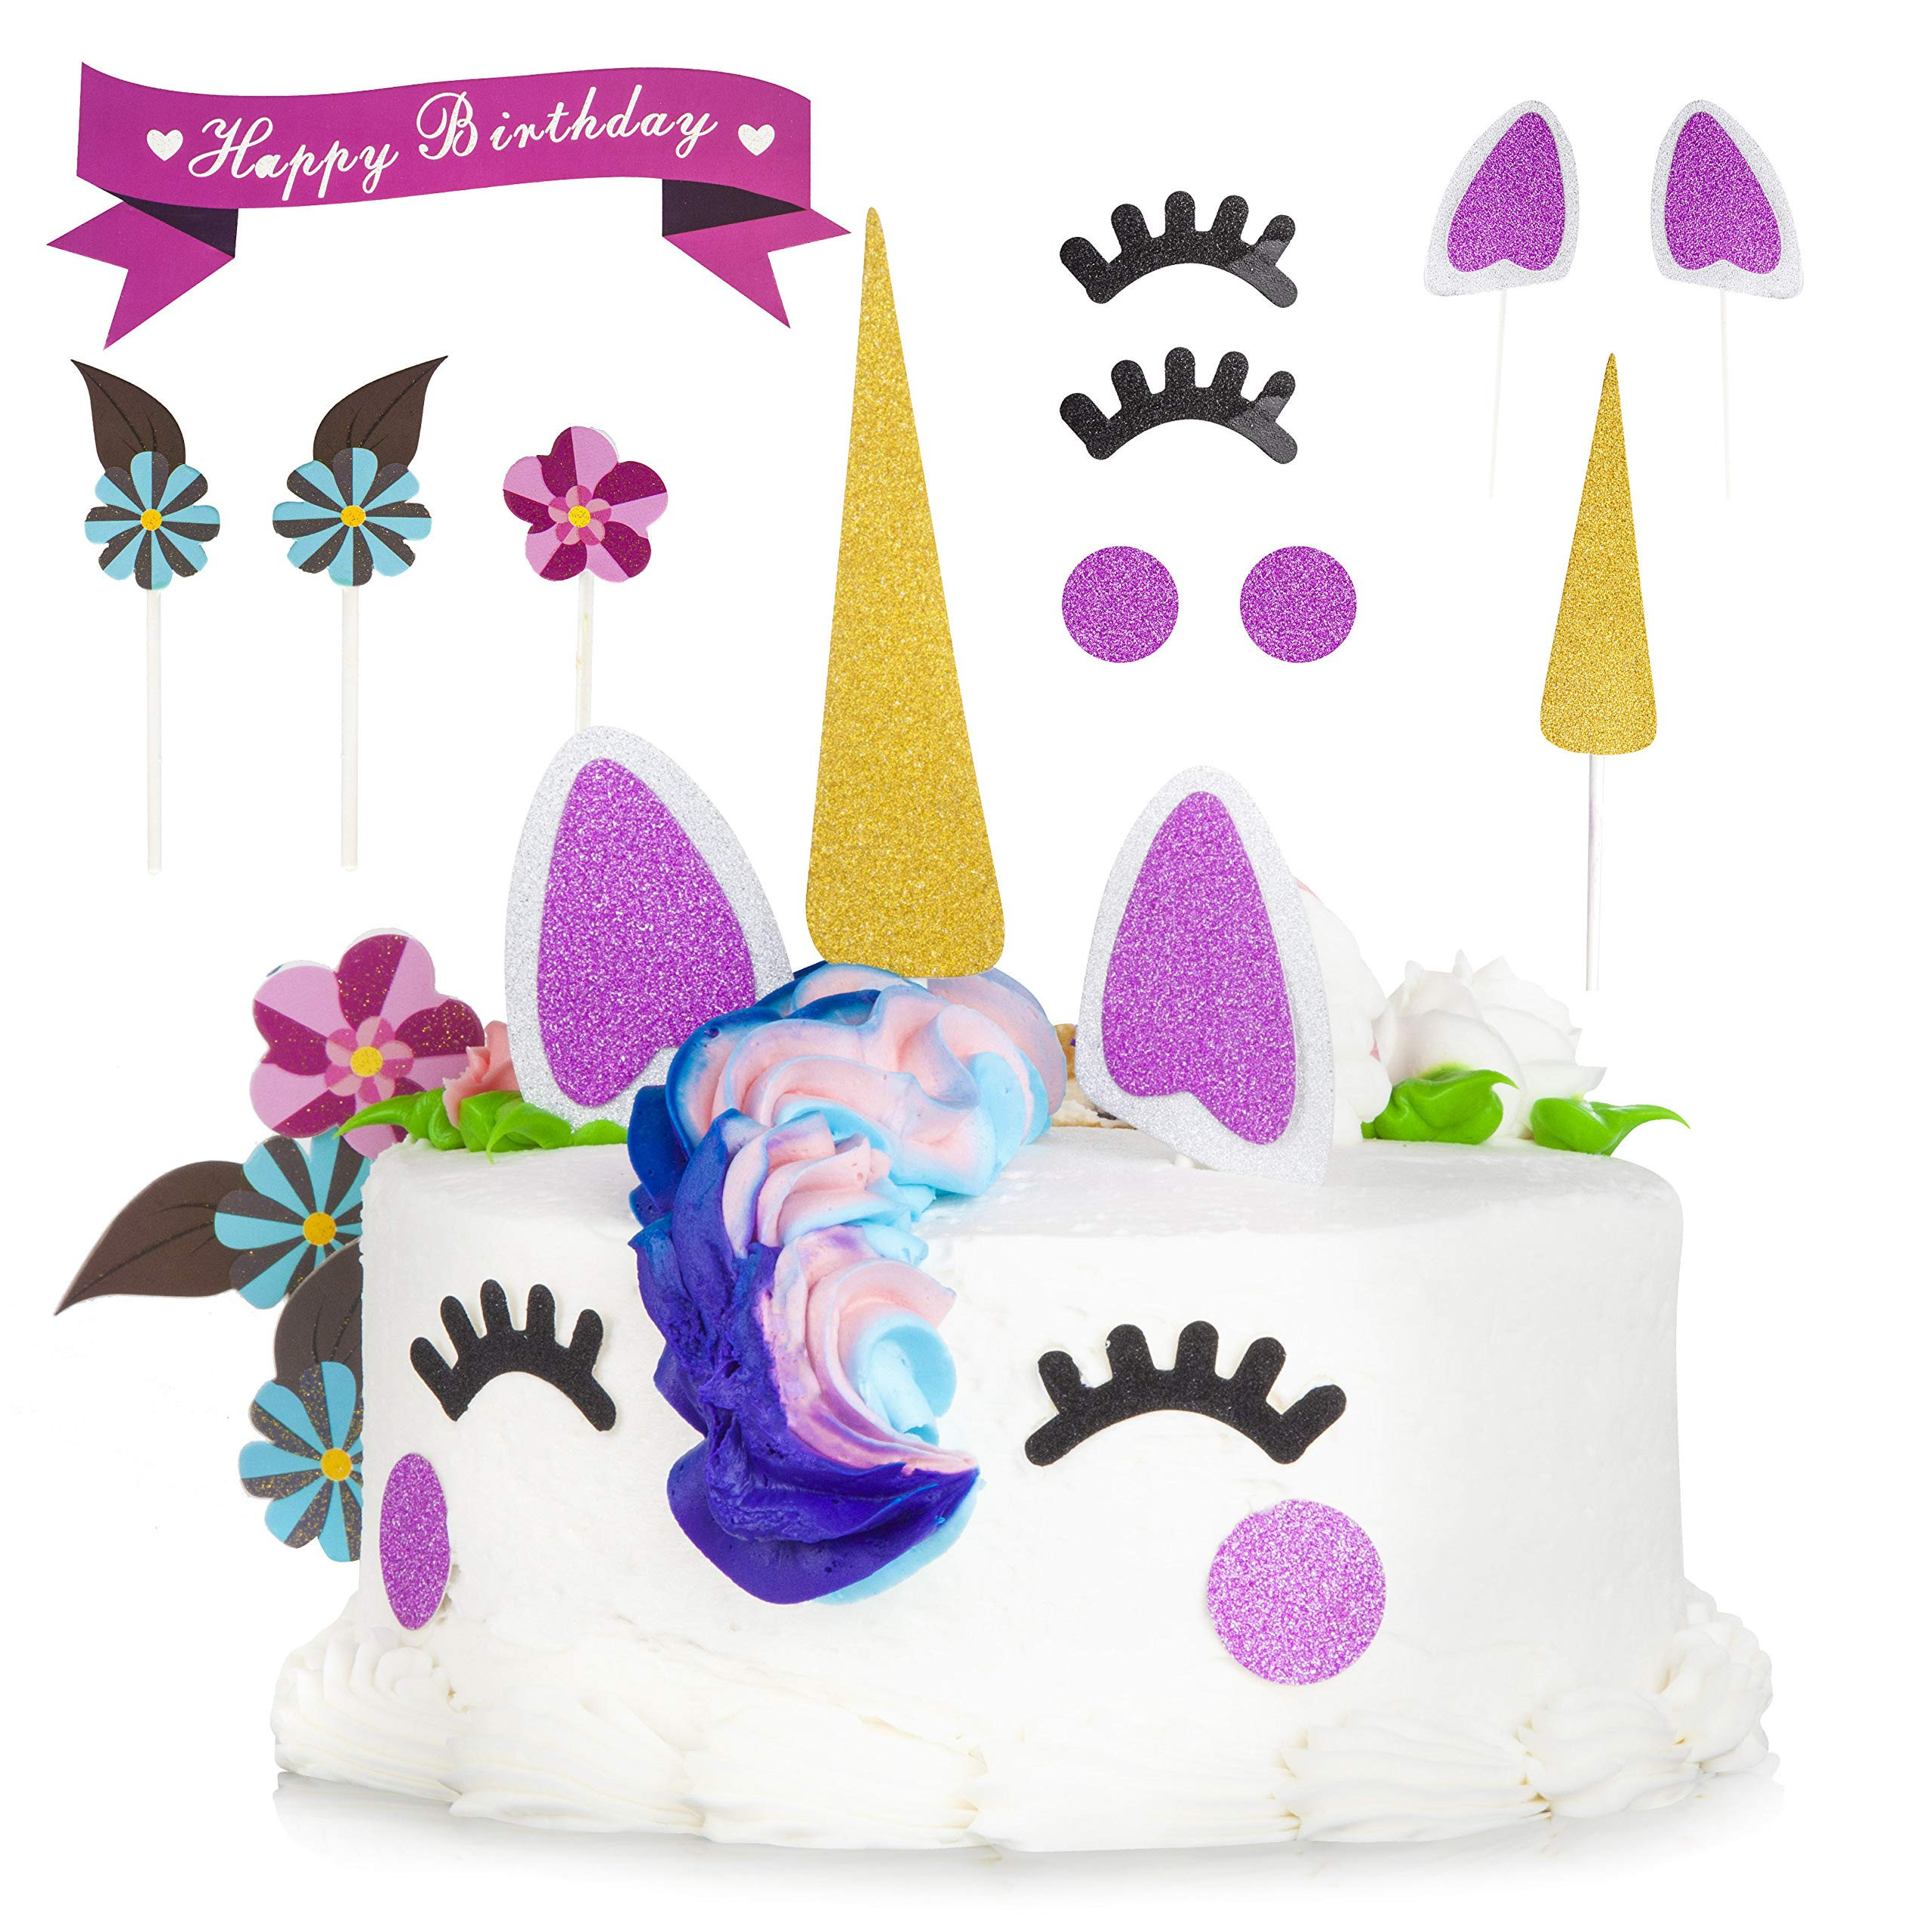 Unicorn Cake Topper and Cupcake Toppers & Wrappers (24) Unicorn Party Supplies with Eyelashes, Unicorns Horn, Ears, Cake Decorations Kit, Tissue Flowers, Balloon Set - Perfect for Birthday by Ross & Chris (Image #3)